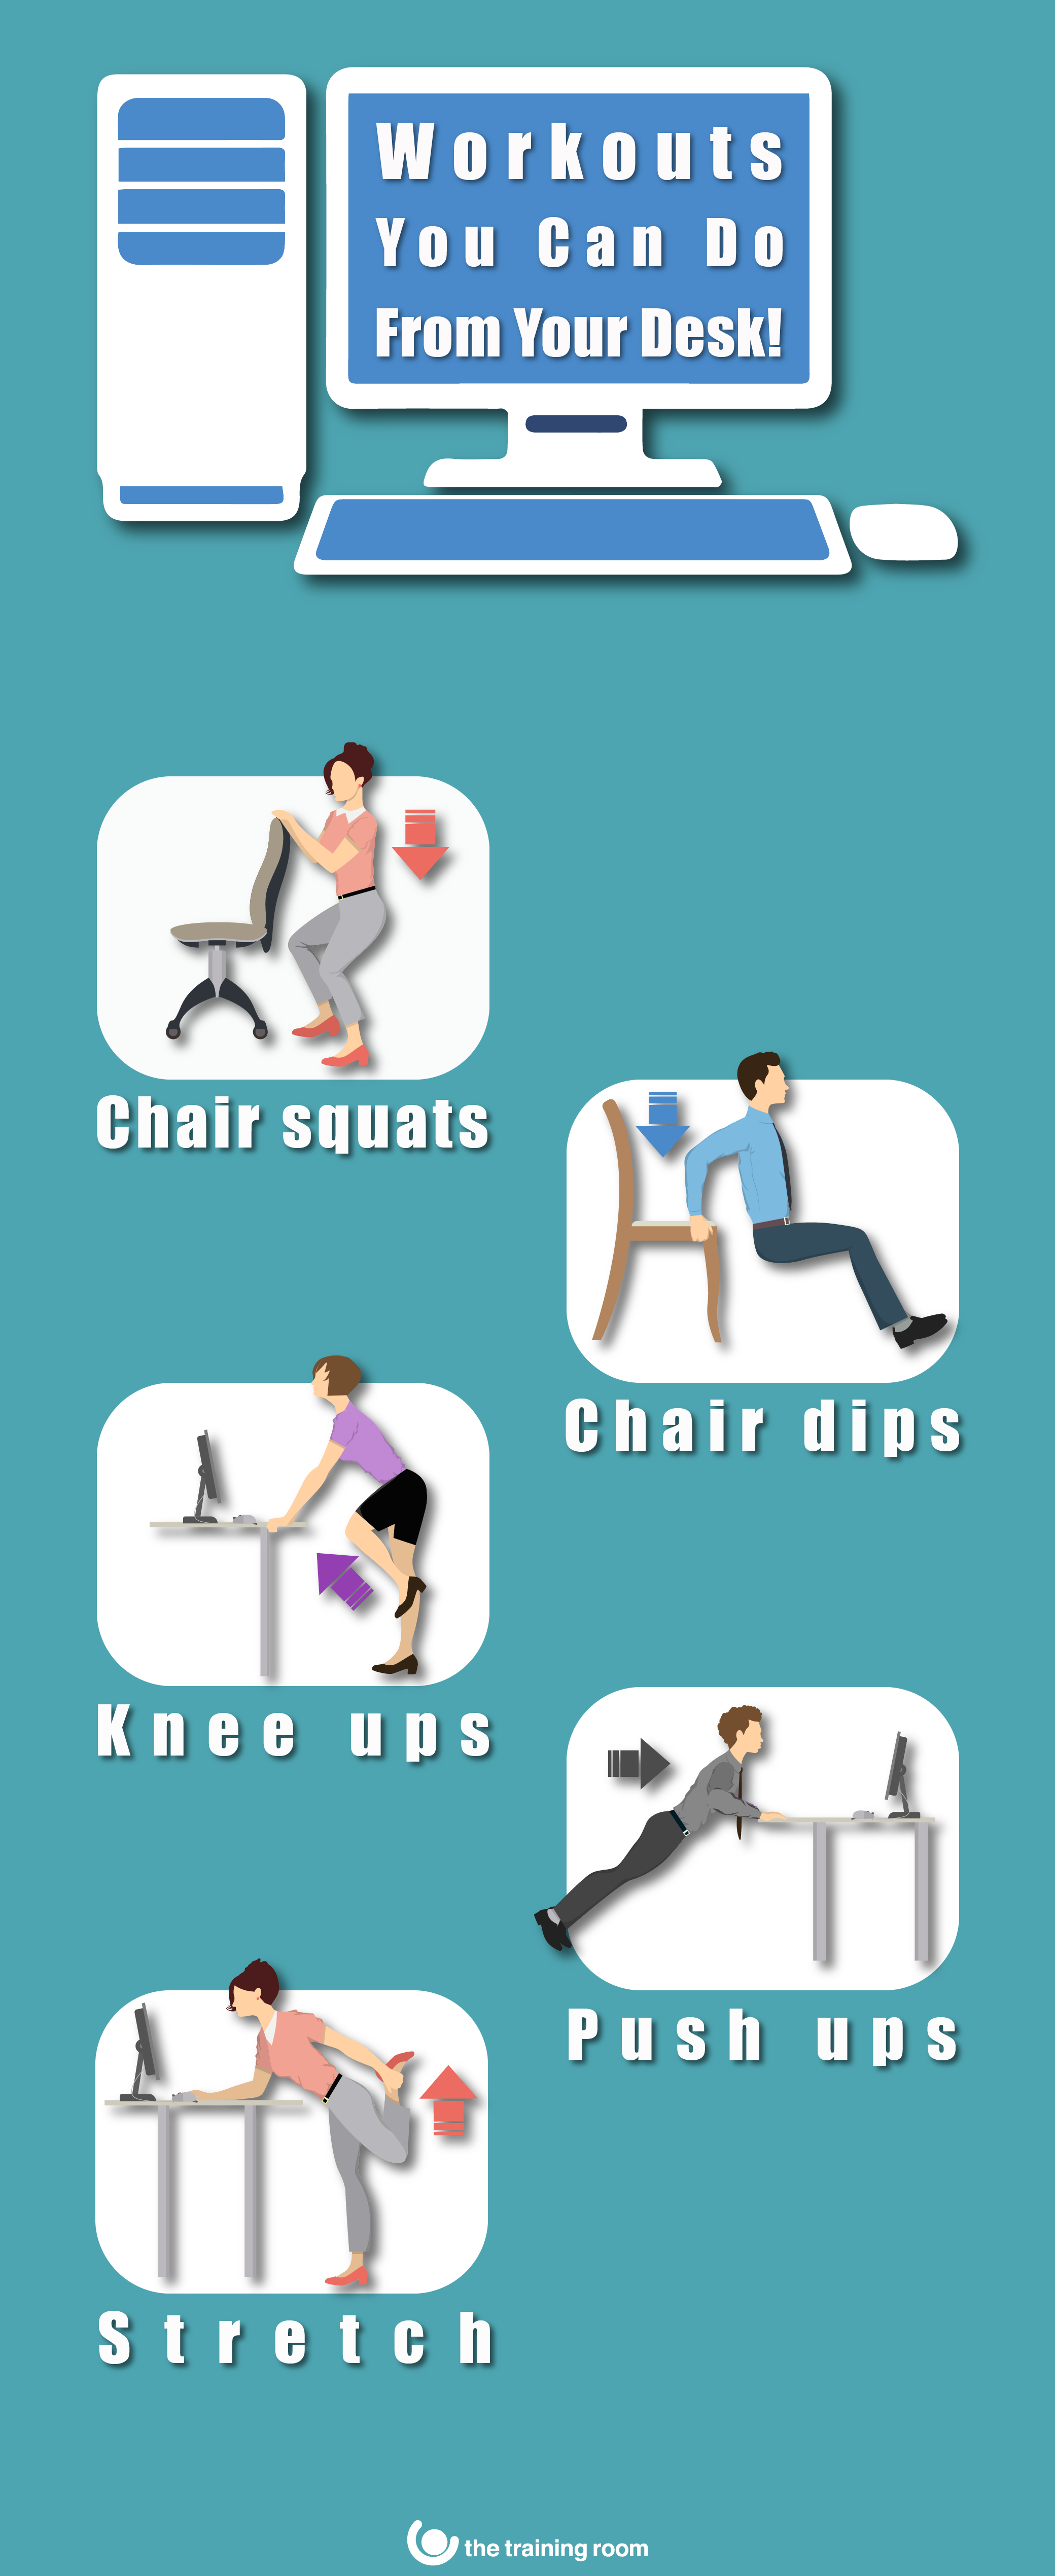 workouts-you-can-do-from-your-desk-01.png